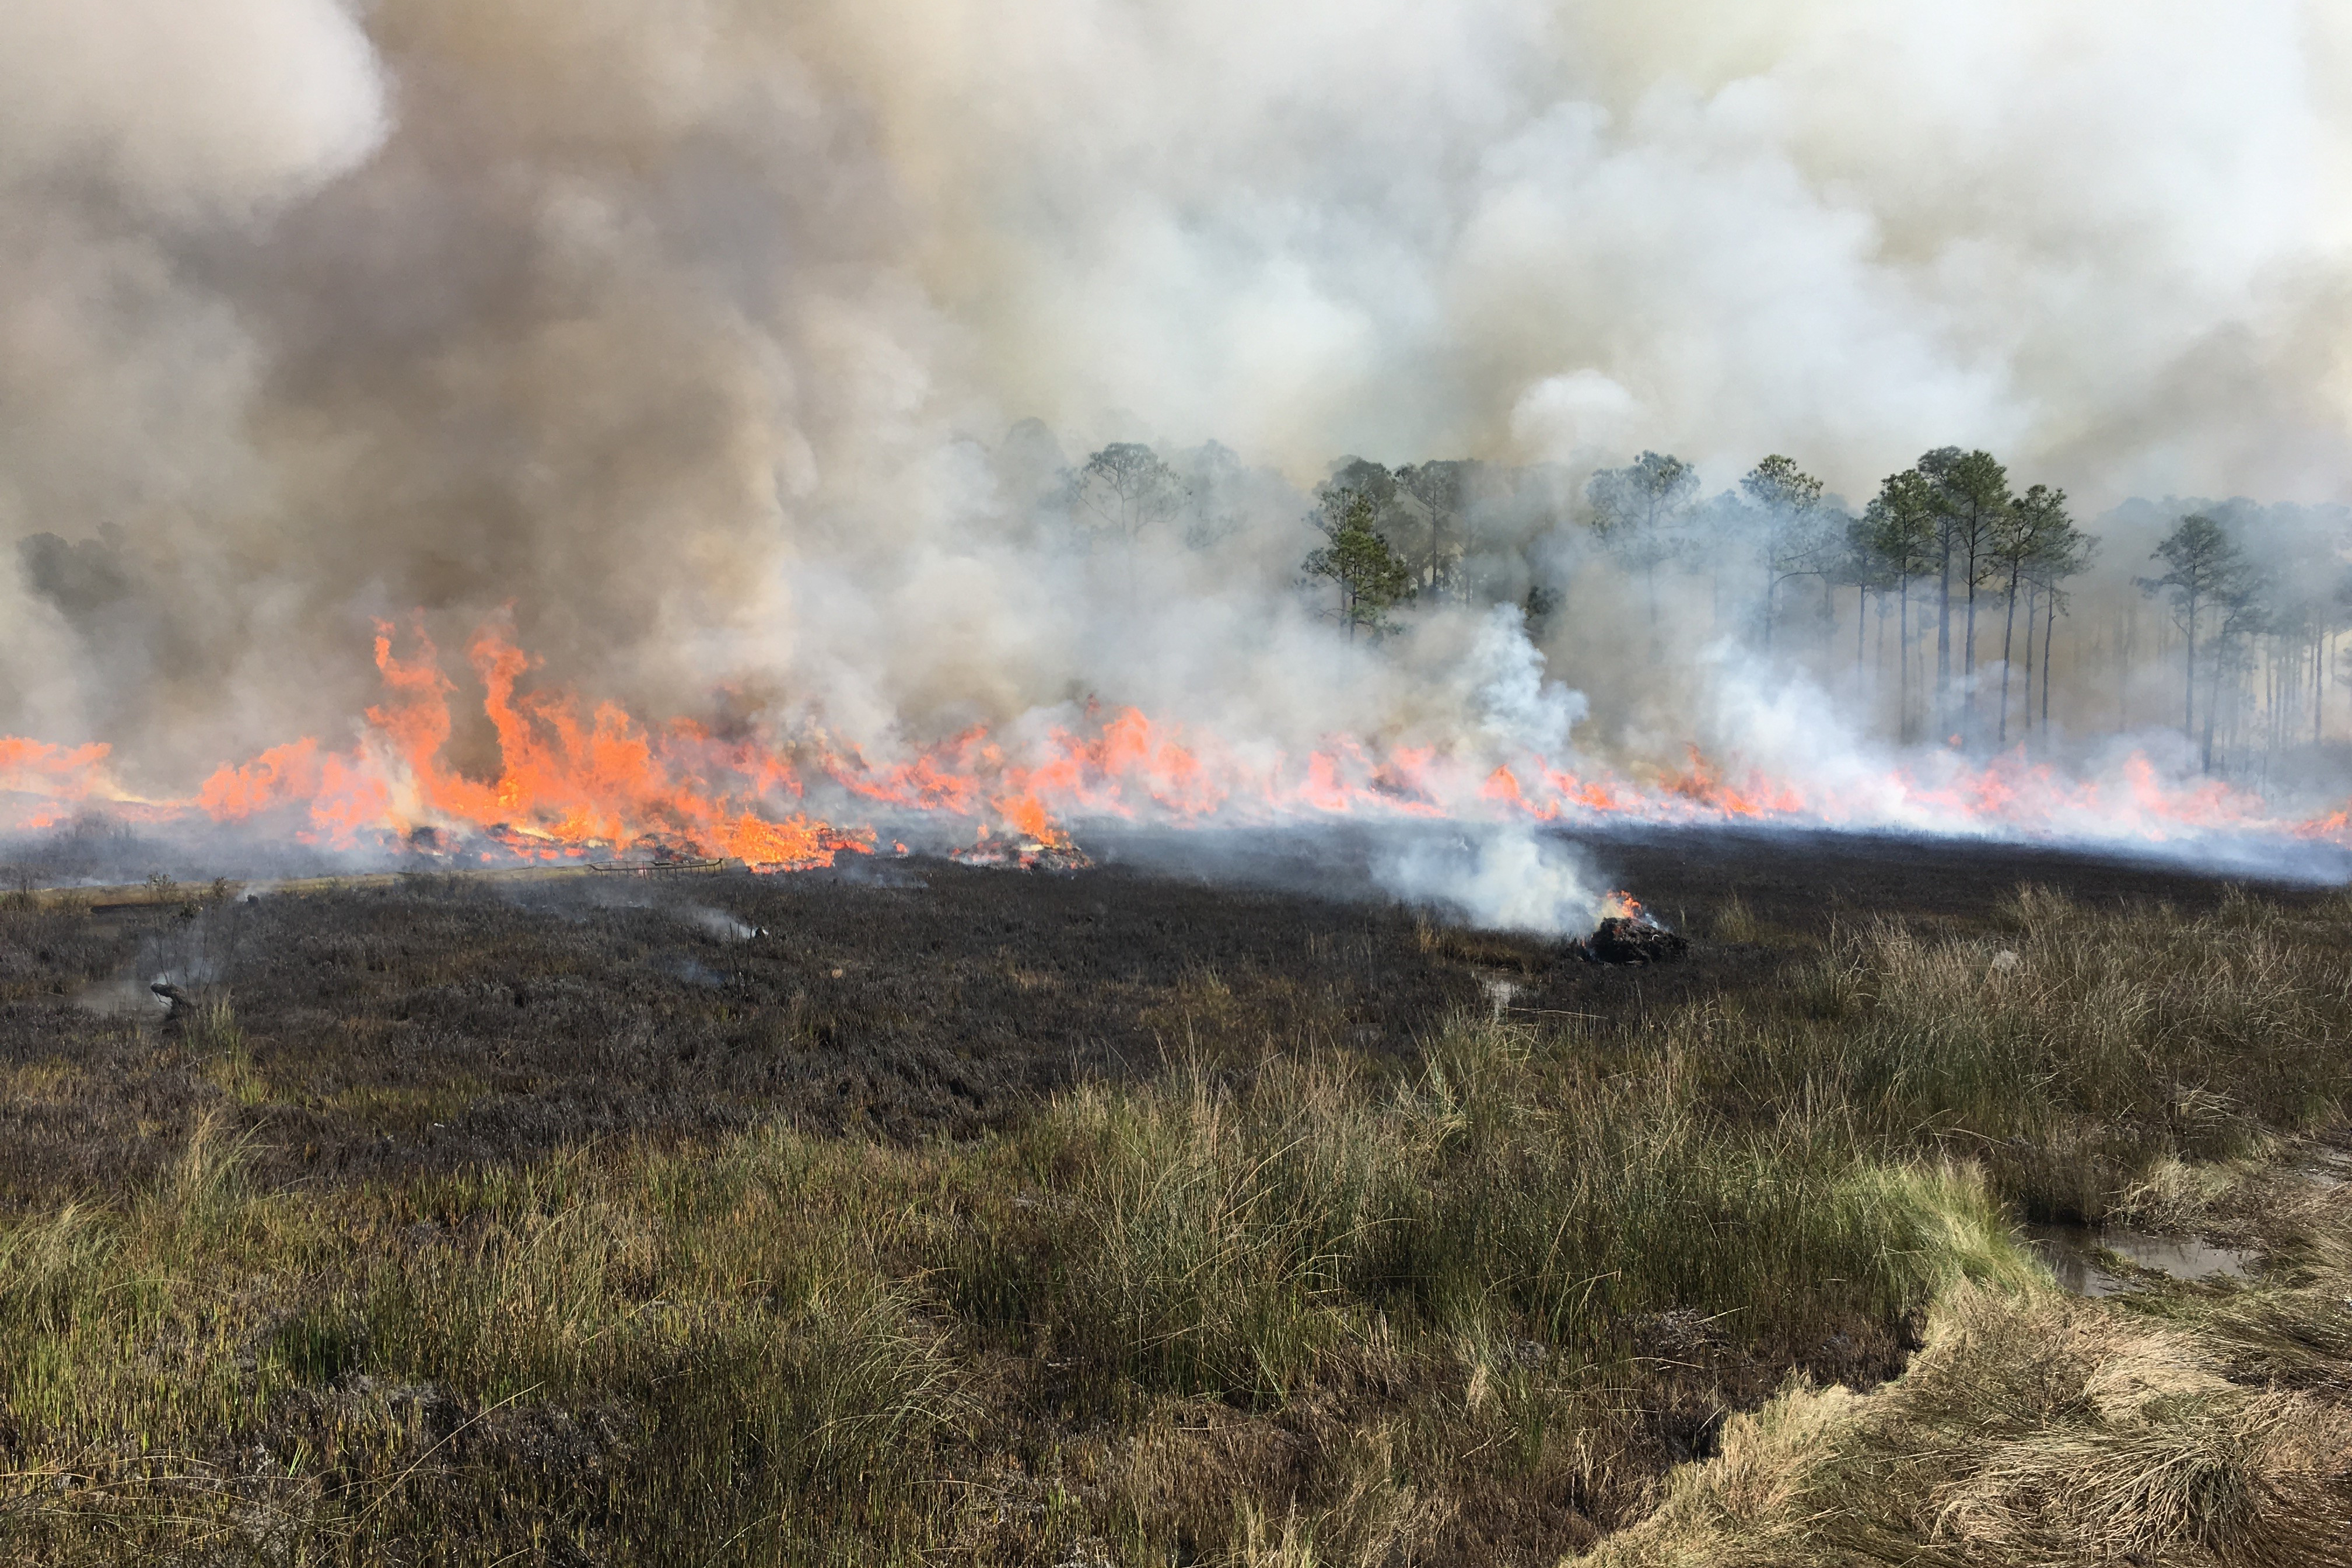 A prescribed burn in Grand Bay NWR fills the air with flames and smoke.